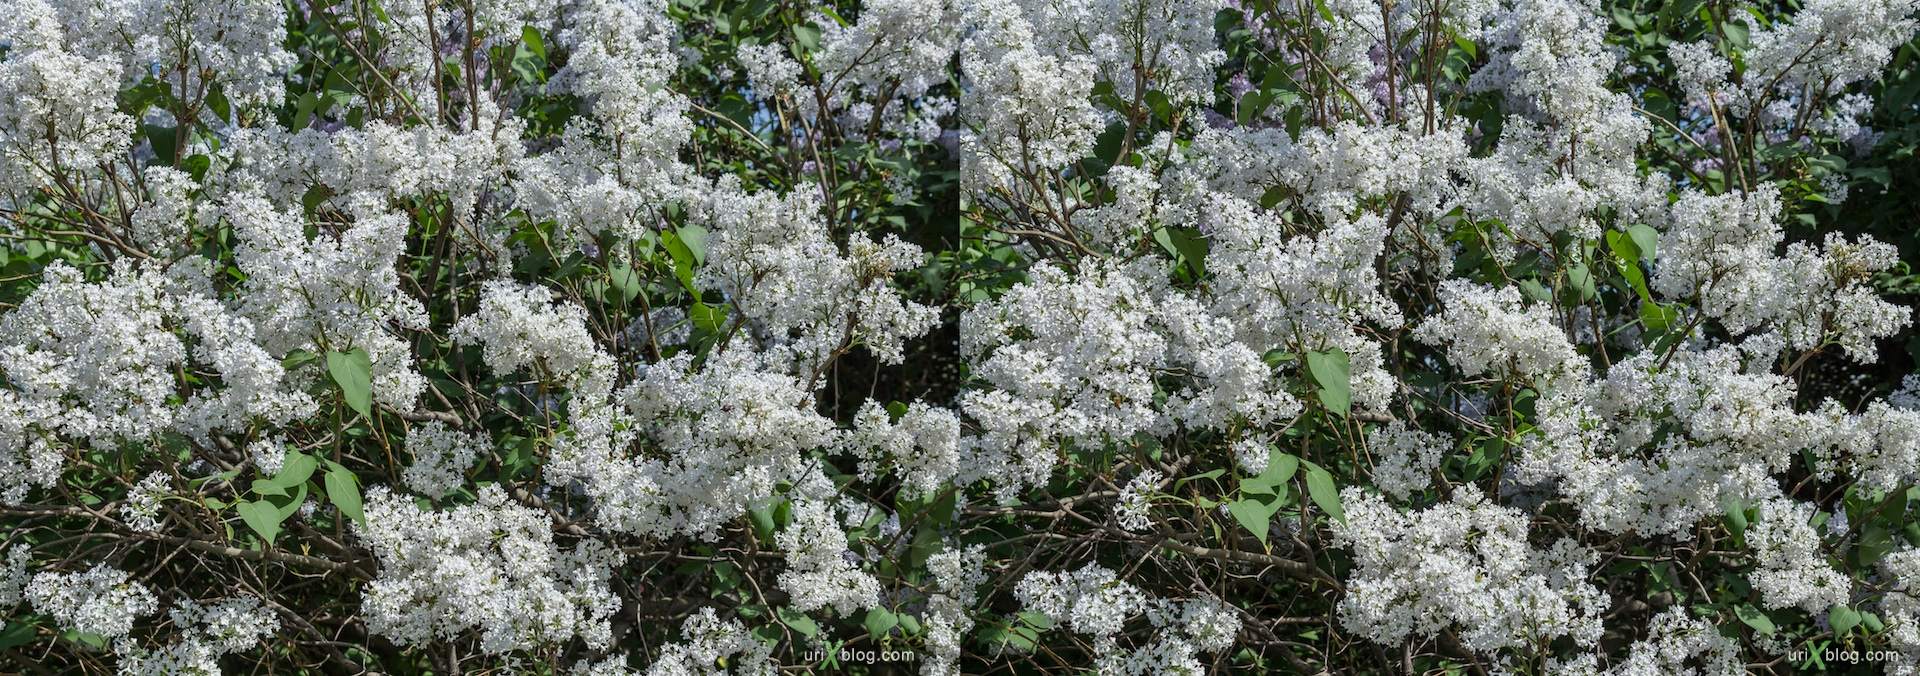 2013, Lilac tree, flower, grass, park, field, Moscow, Russia, spring, 3D, stereo pair, cross-eyed, crossview, cross view stereo pair, stereoscopic